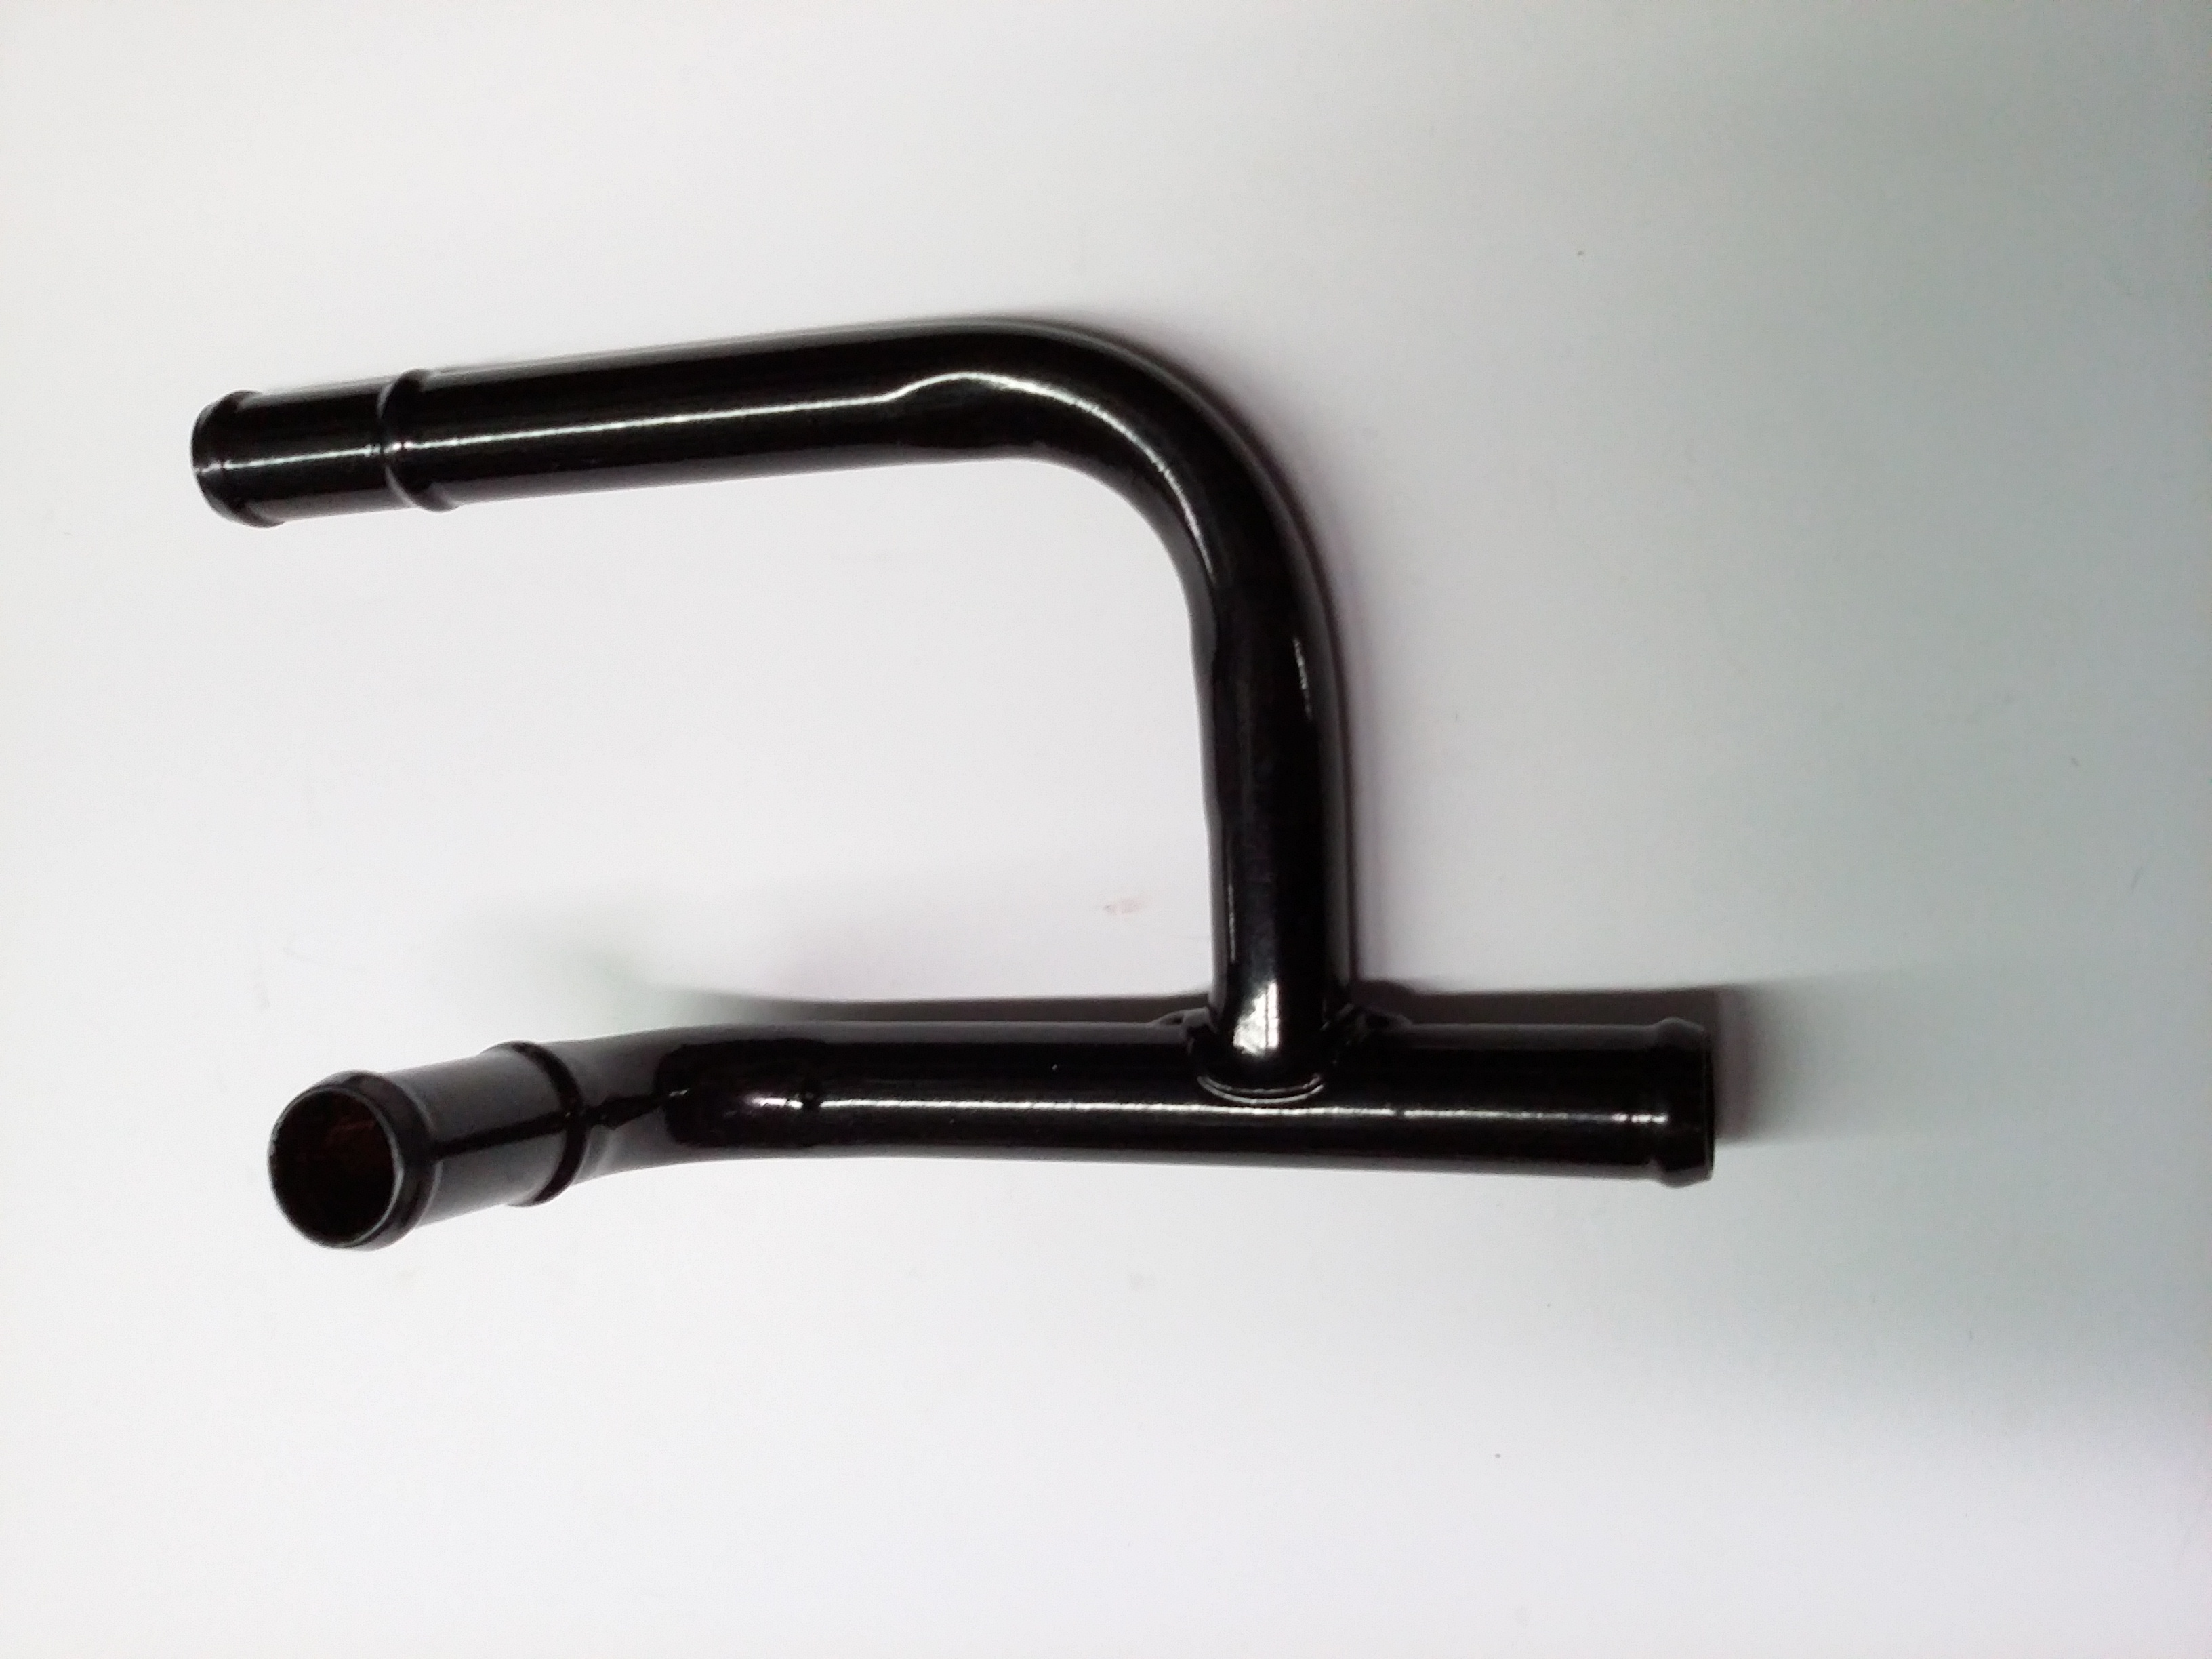 1988 Jeep Cherokee Tee Cooling Conditioning Condenser